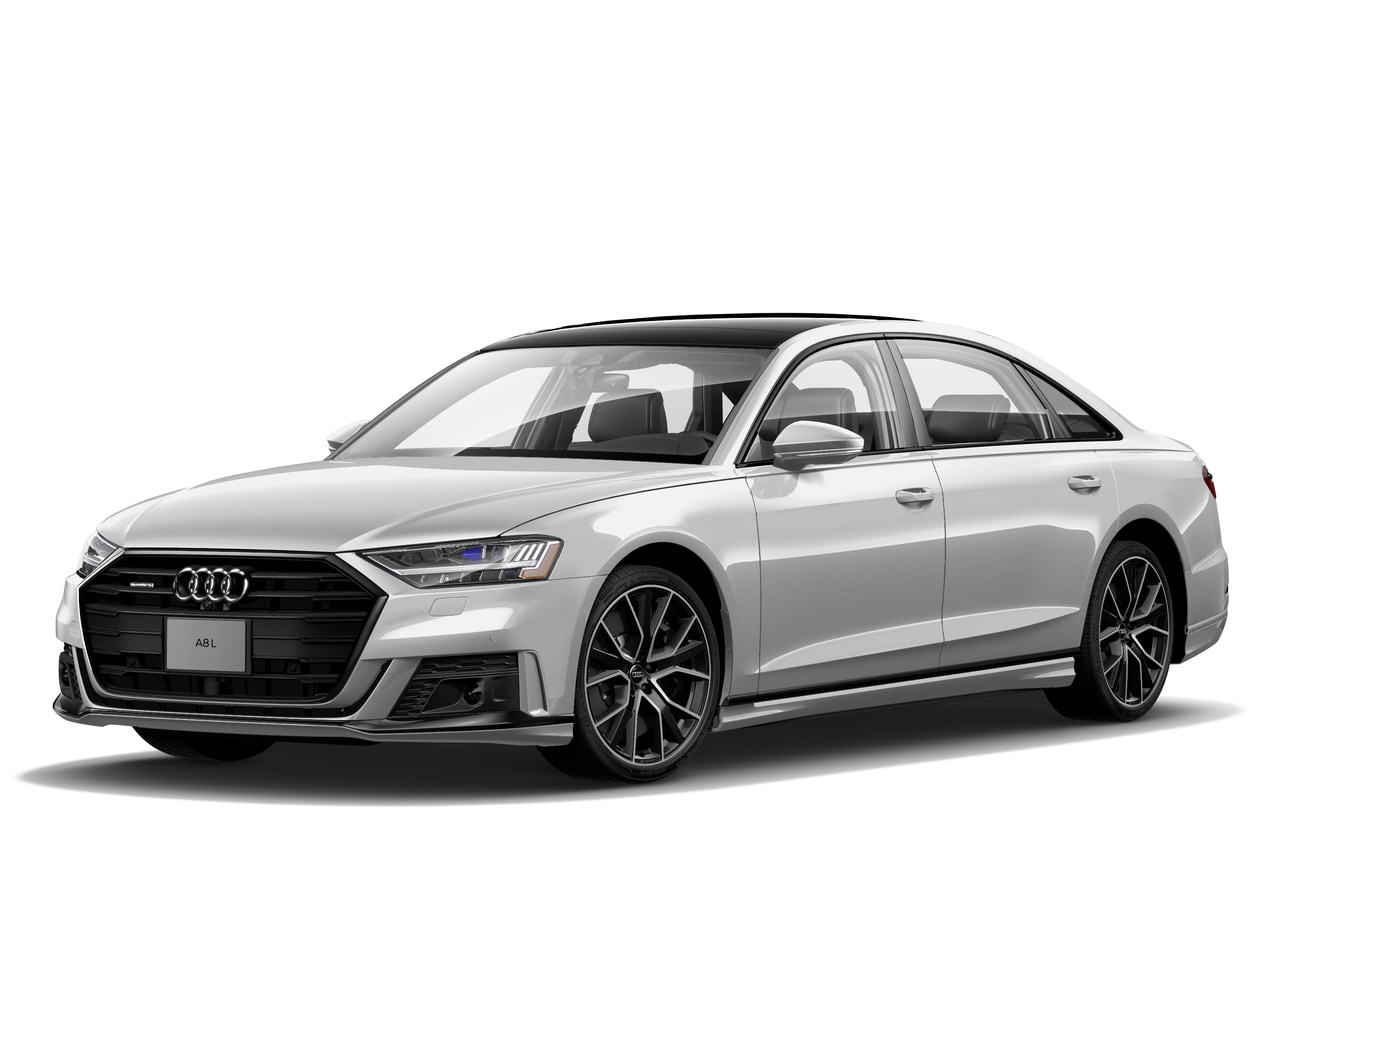 2020 Audi A8 For Sale in West Springfield MA | Audi West ...